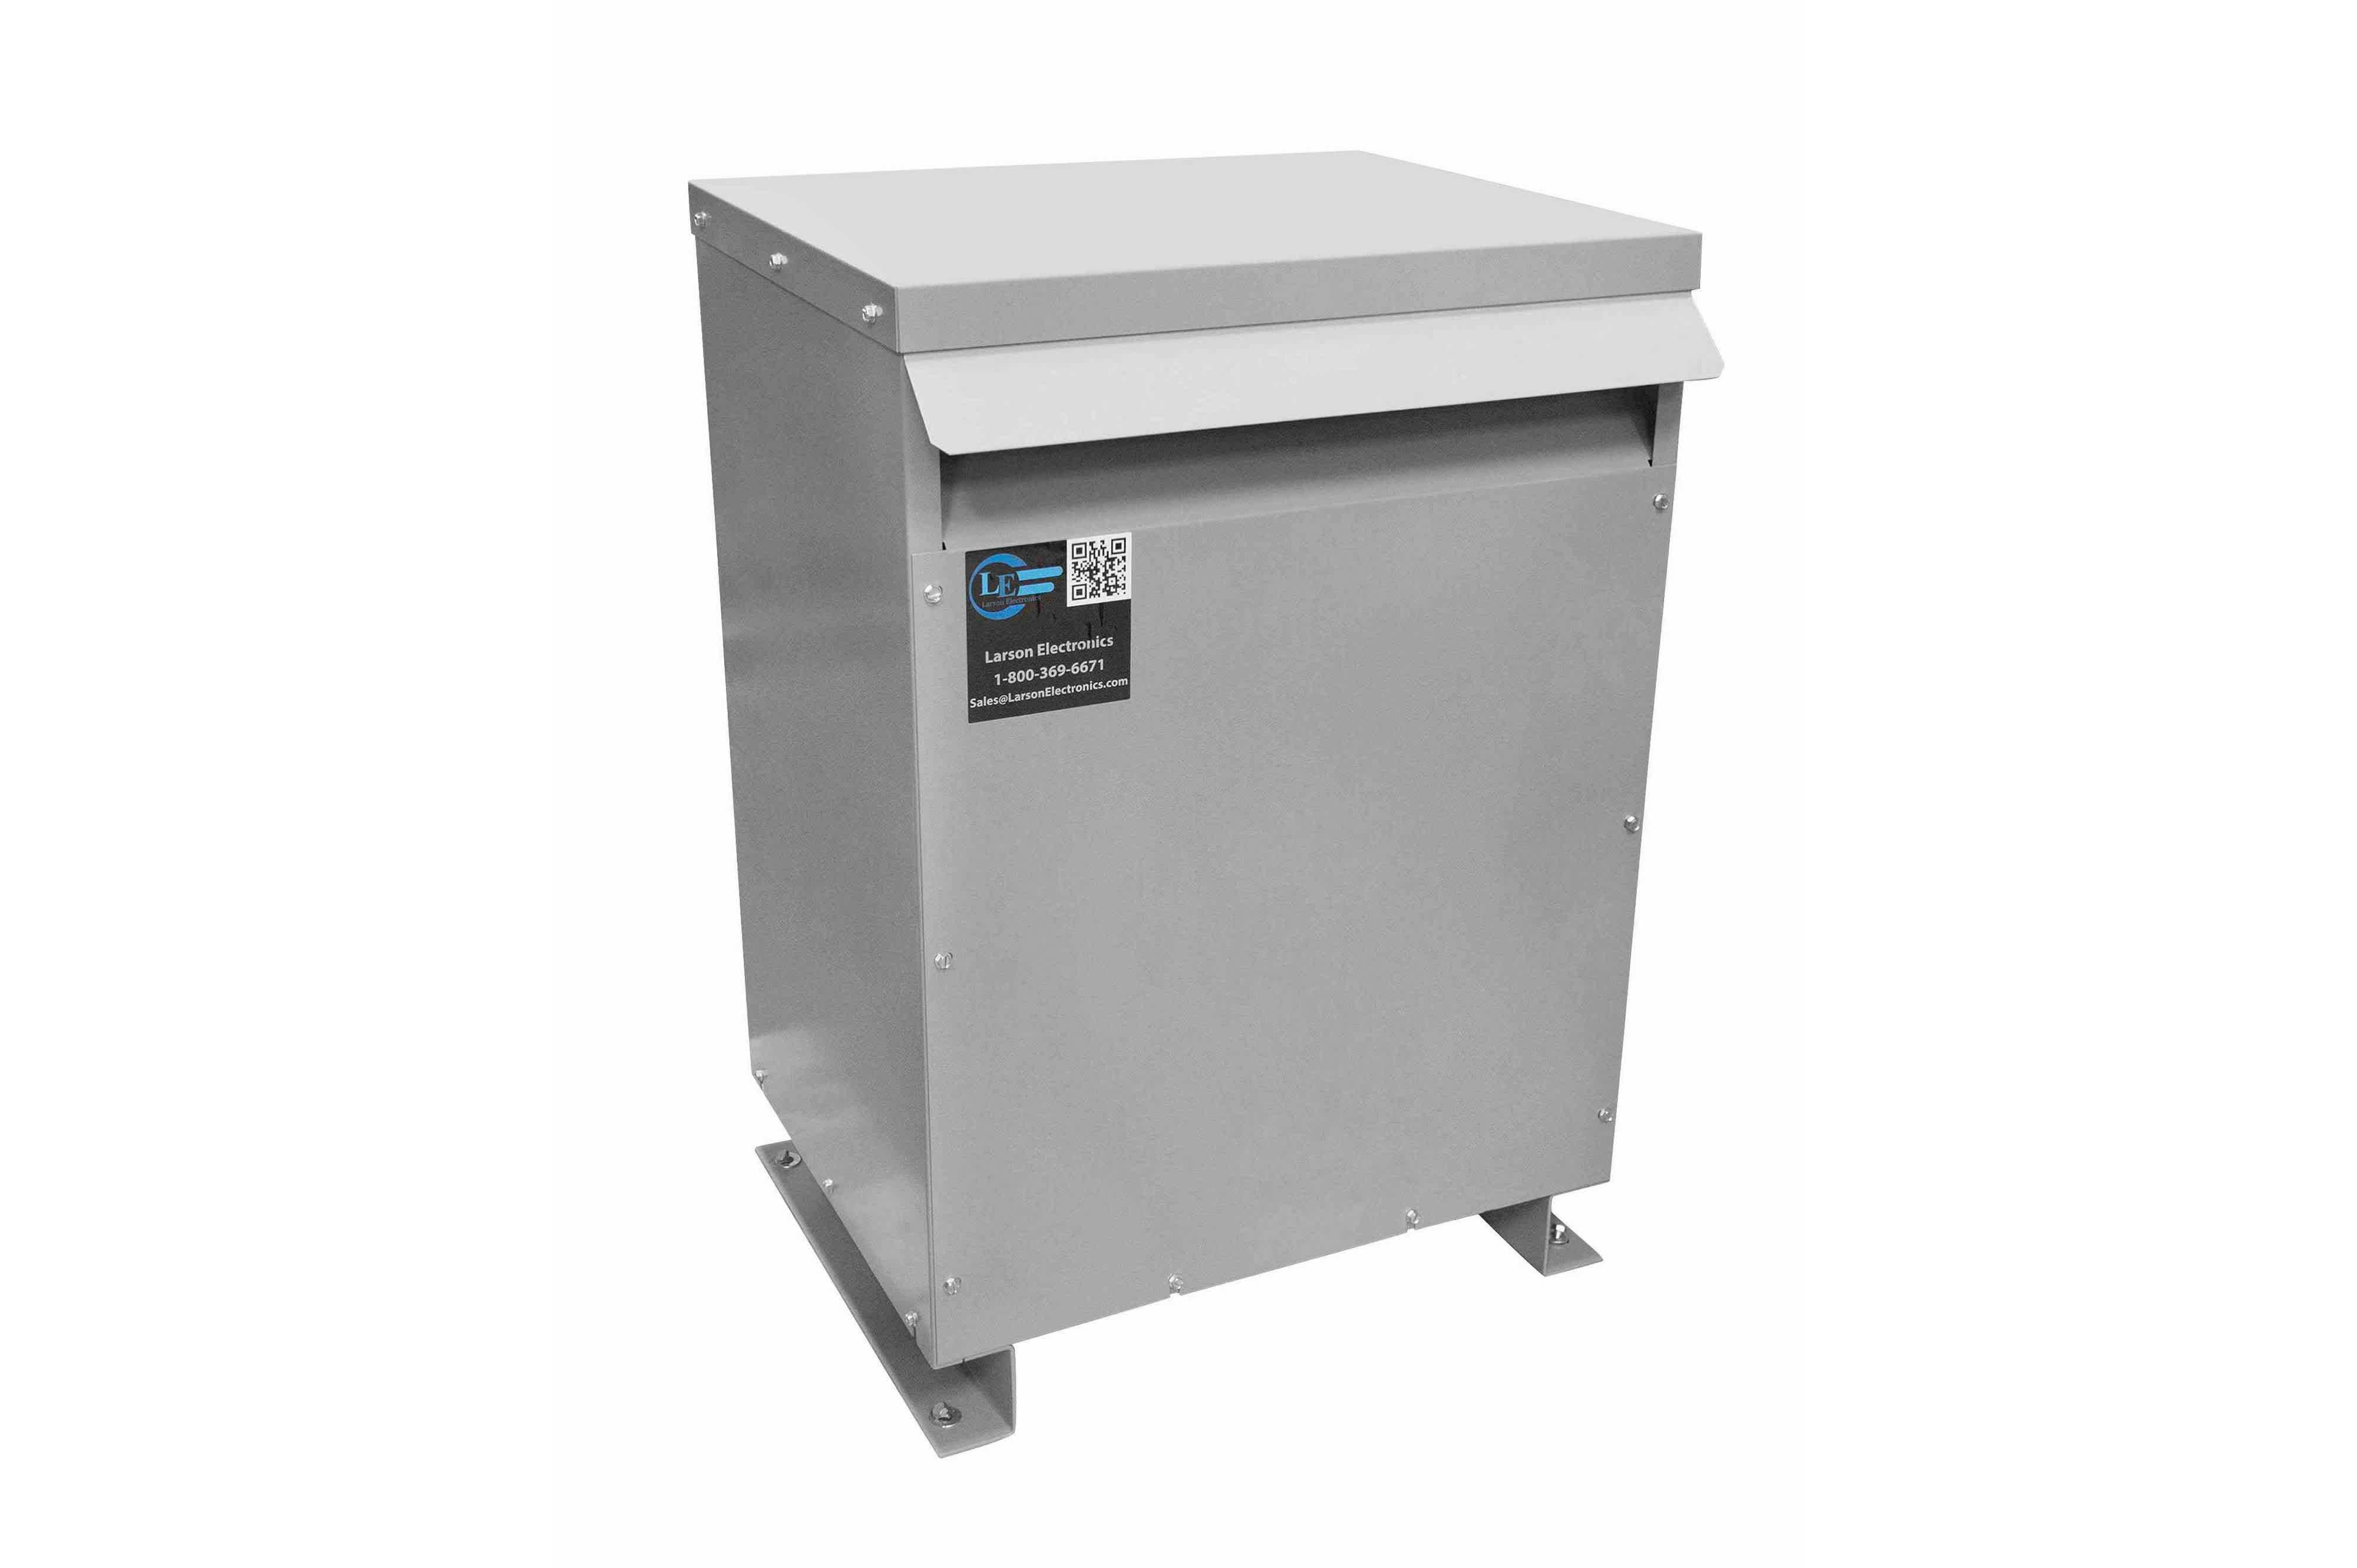 167 kVA 3PH Isolation Transformer, 415V Wye Primary, 600V Delta Secondary, N3R, Ventilated, 60 Hz